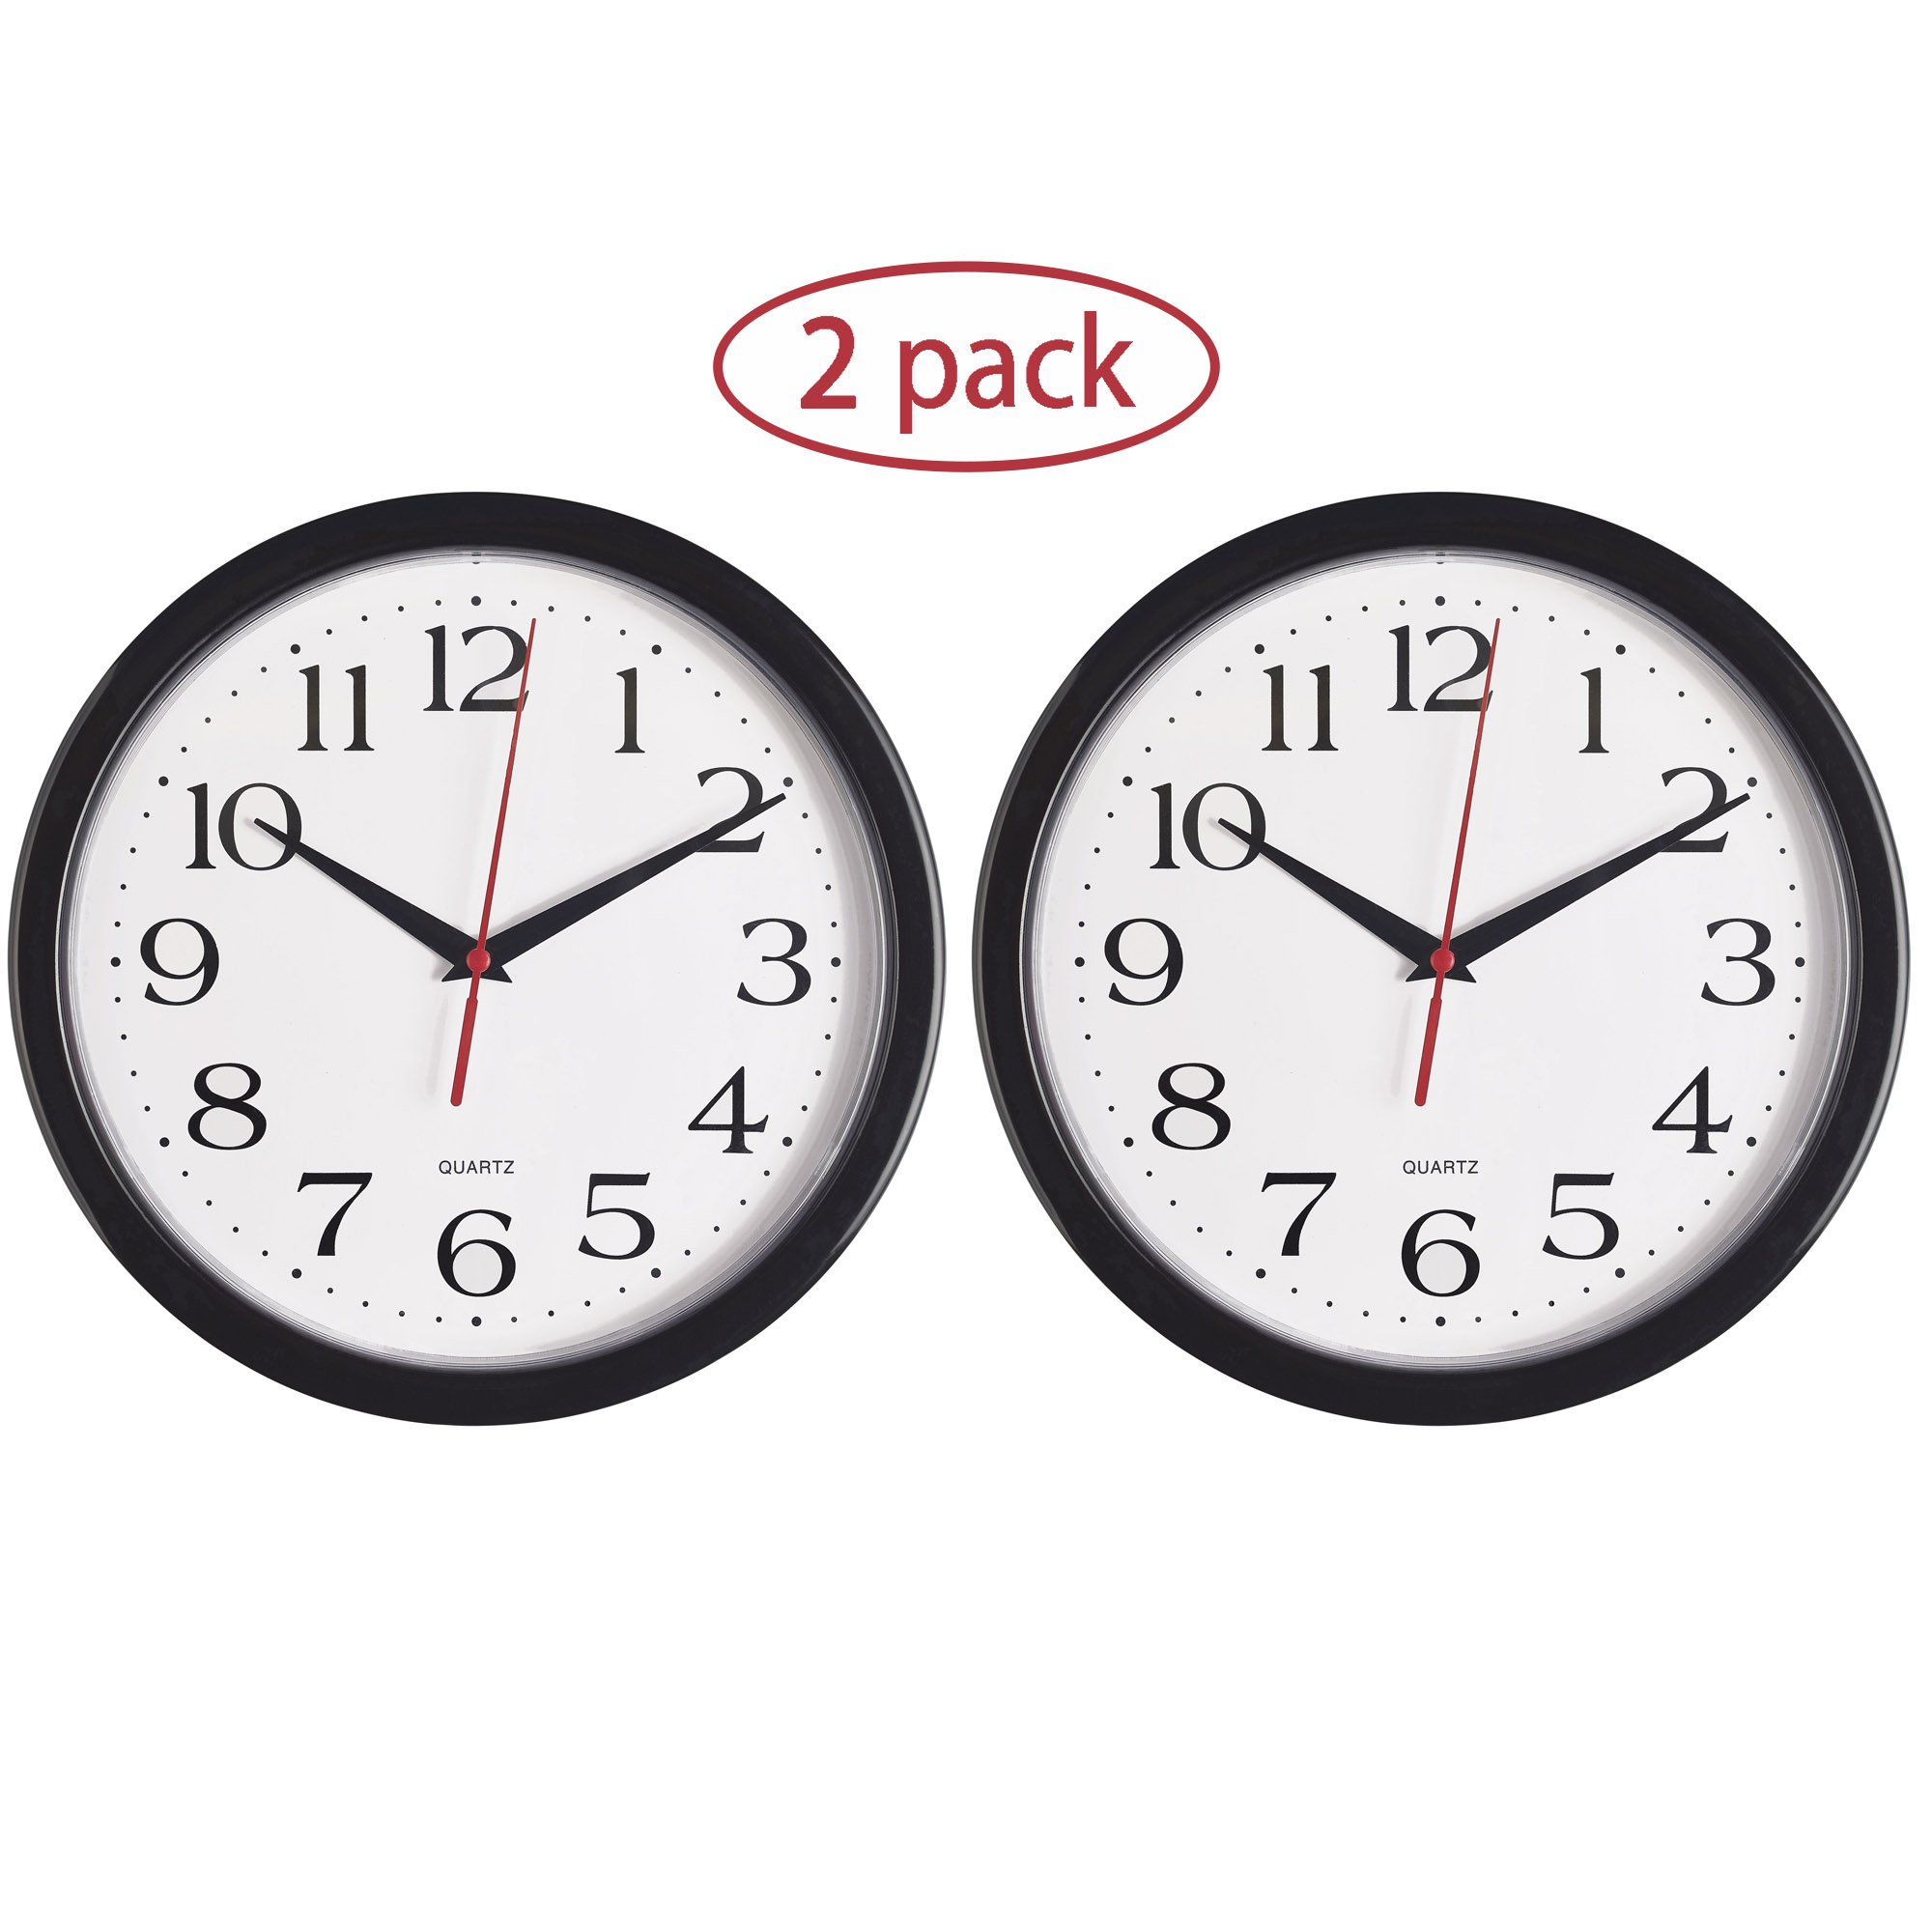 Bernhard Products - Black Wall Clocks, 2 Pack Silent Non Ticking Quality Quartz Battery Operated 10 Inch Round Easy to Read Home/Office/School Clock (Black)